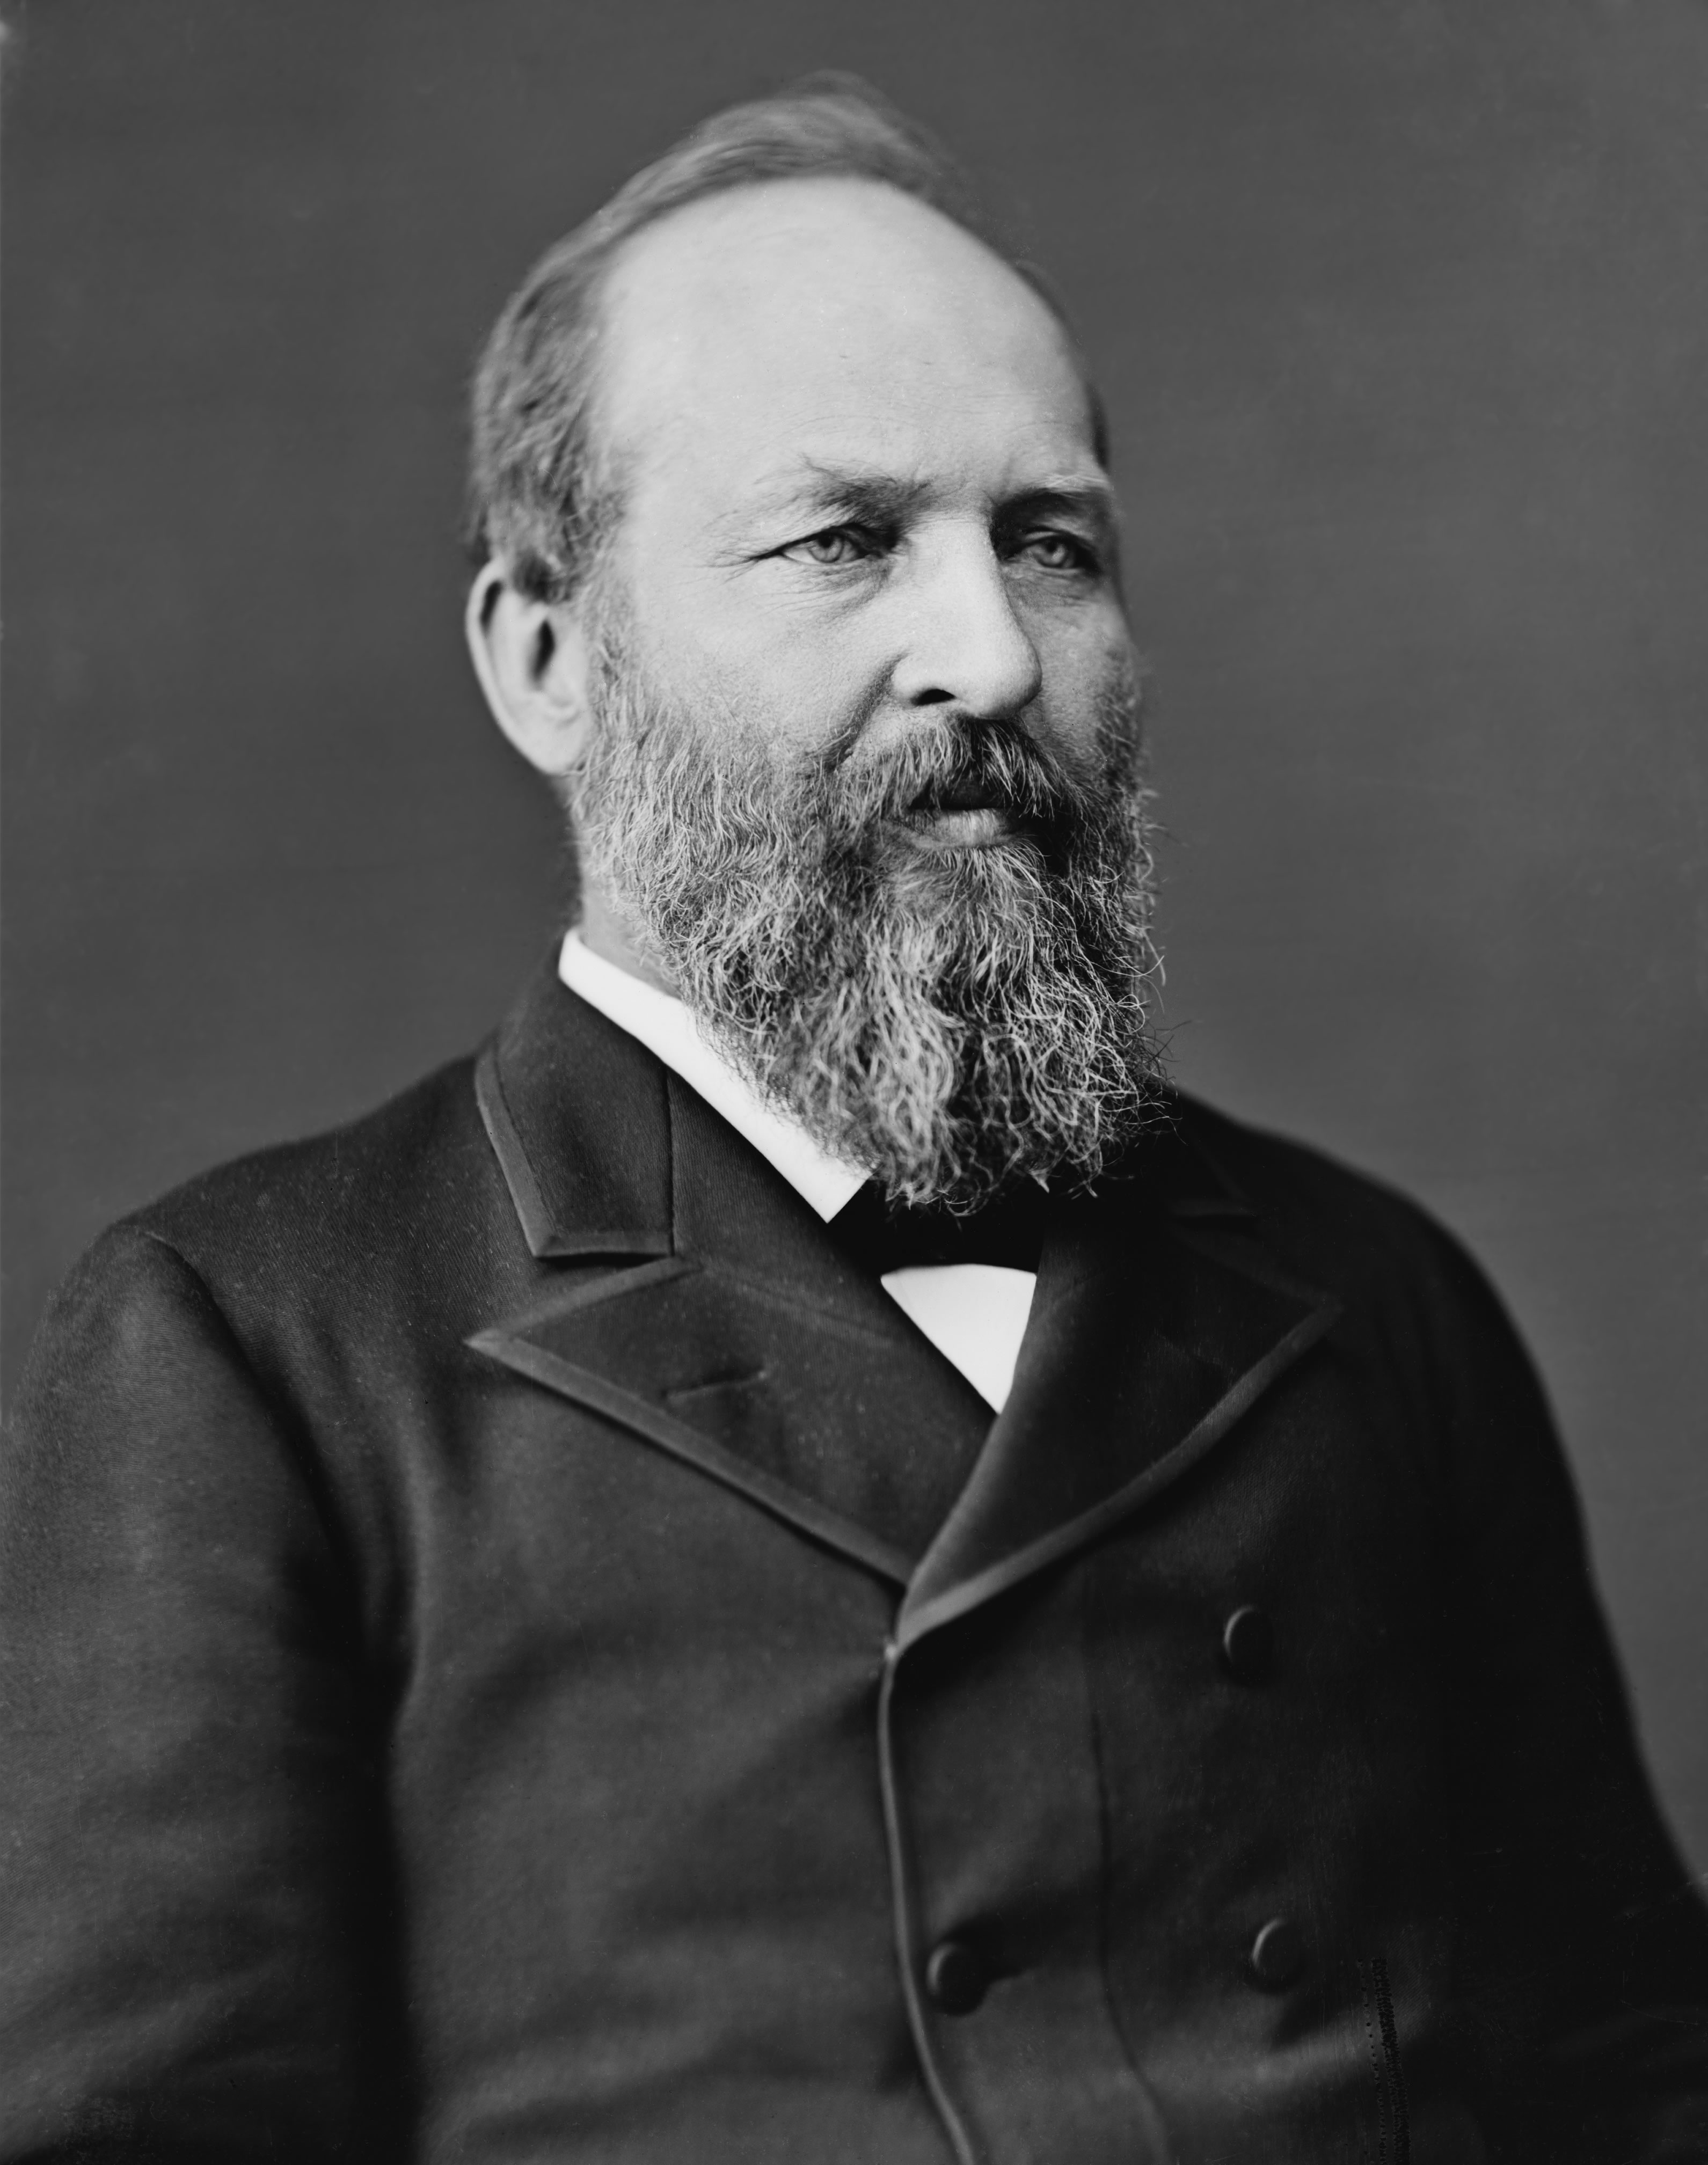 Portrait of James A. Garfield